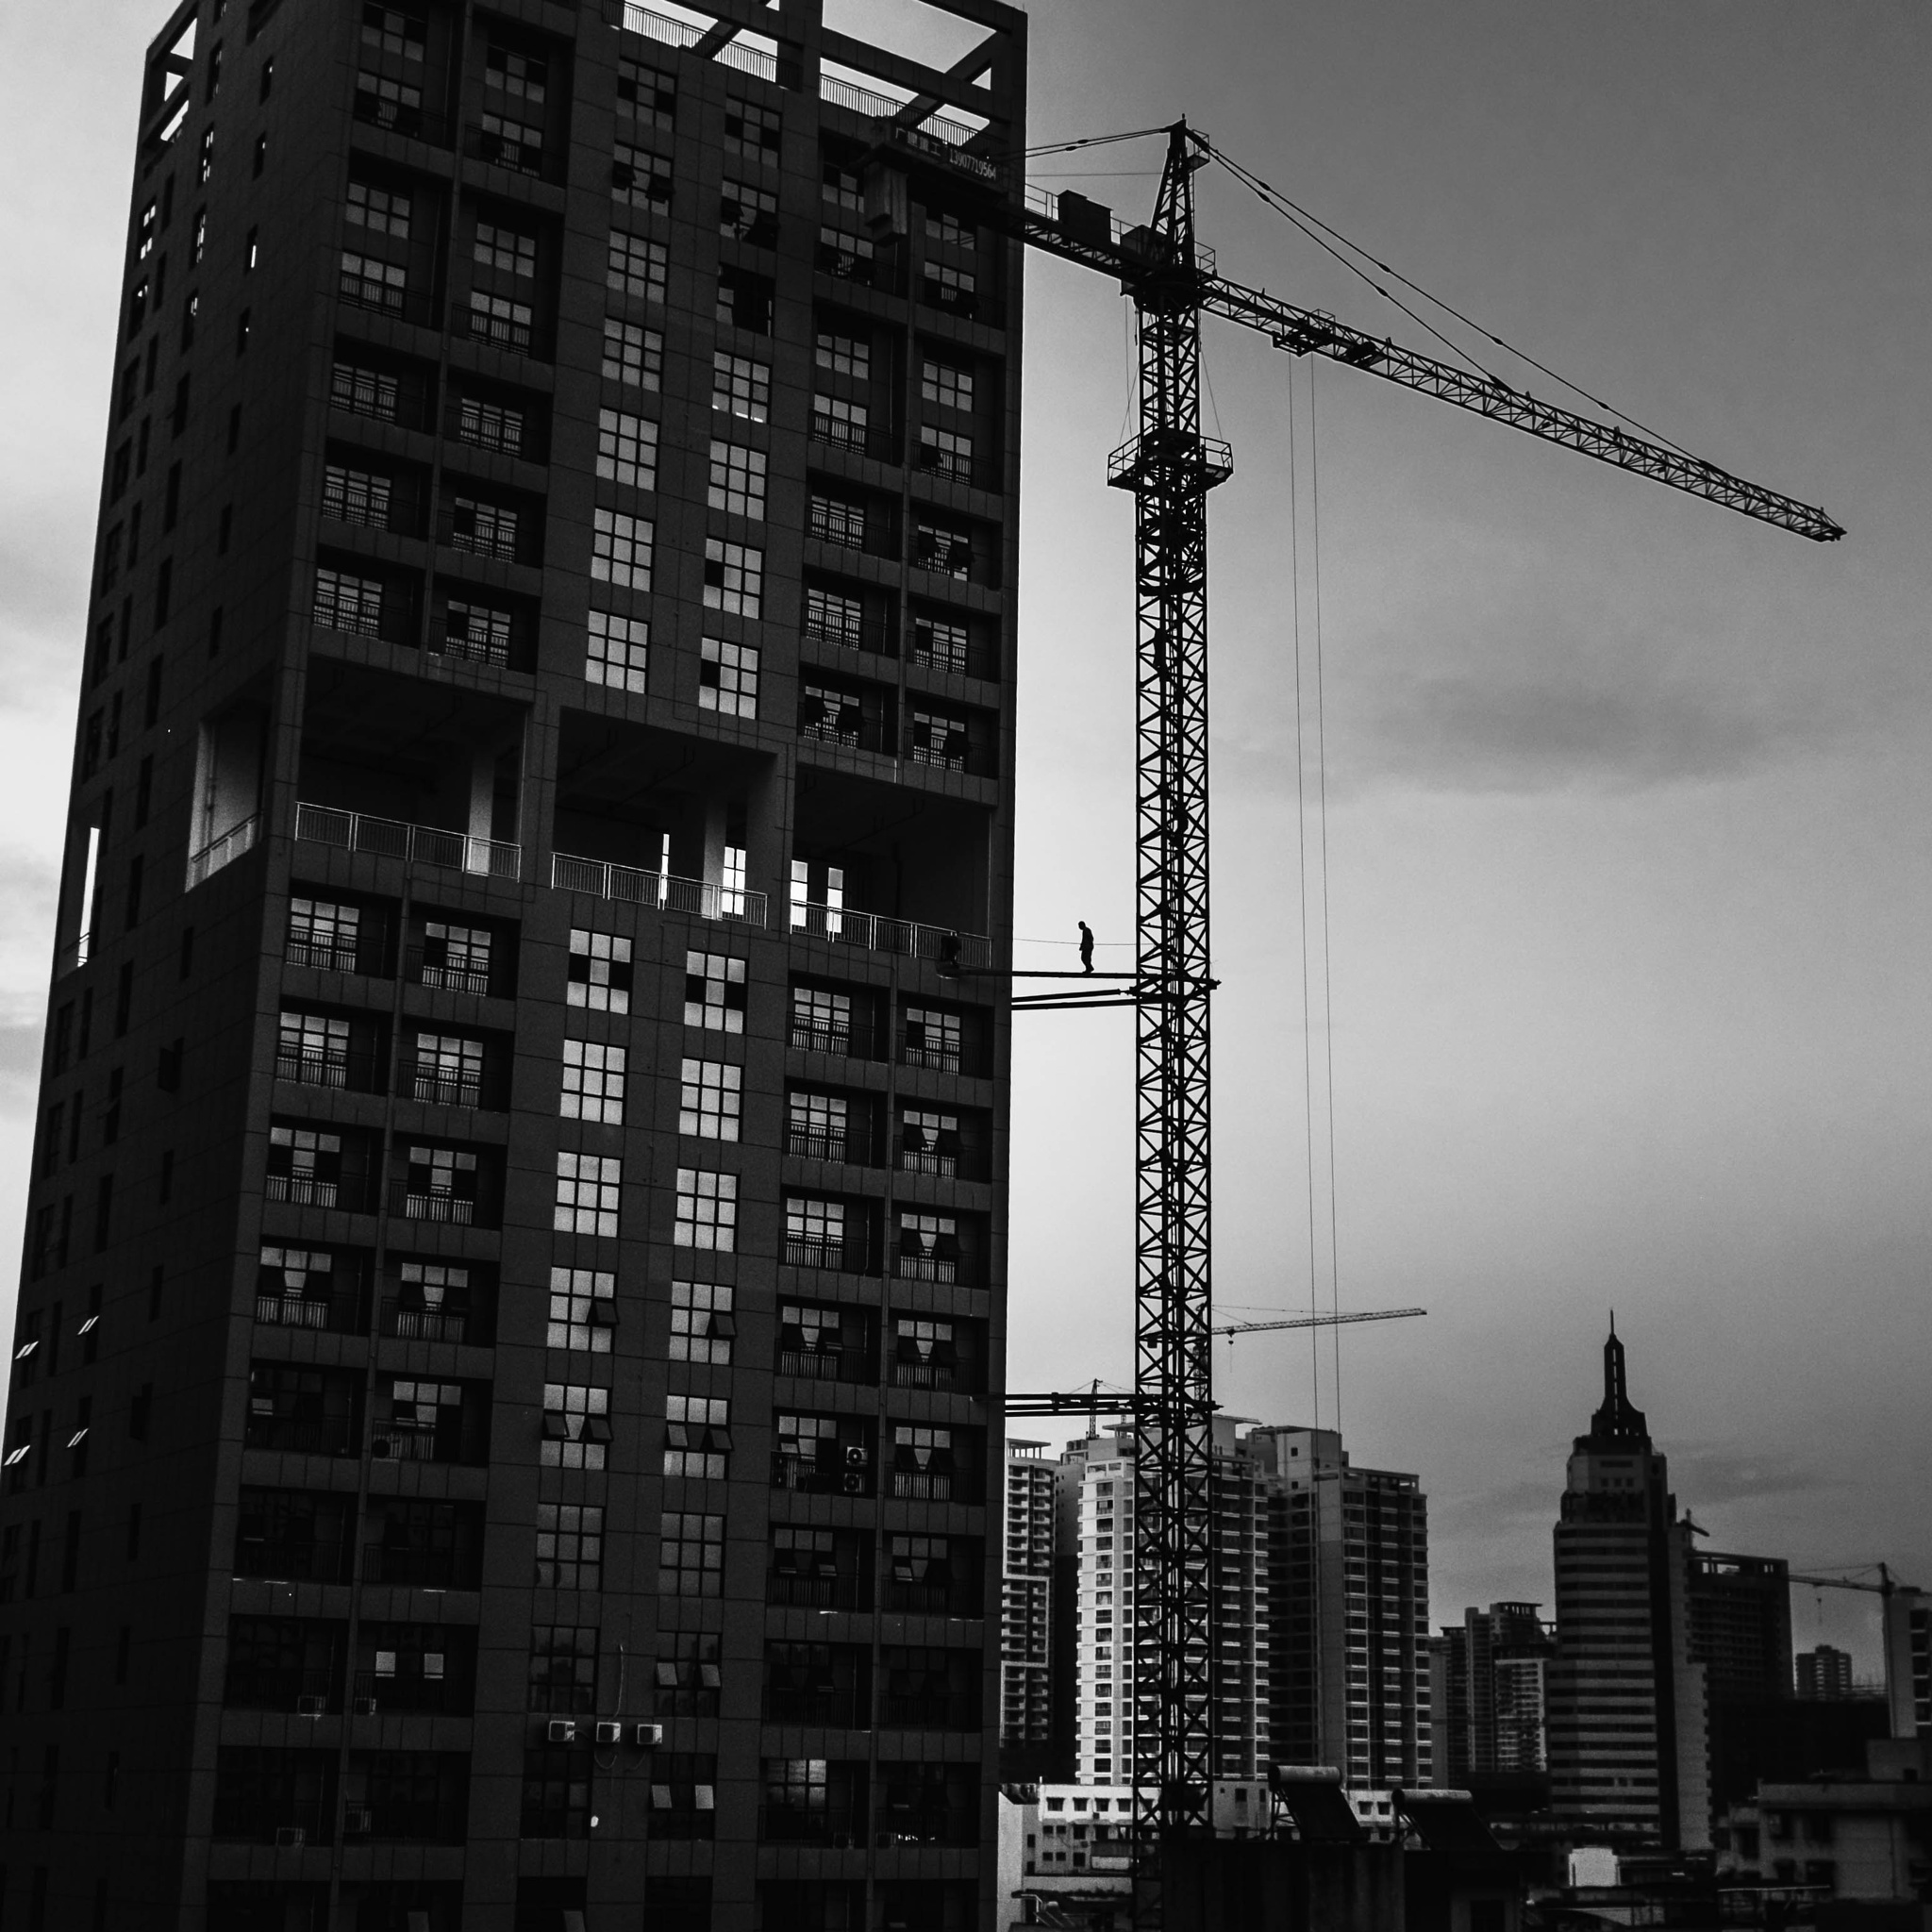 The Crane Worker. by selftravelvehicle